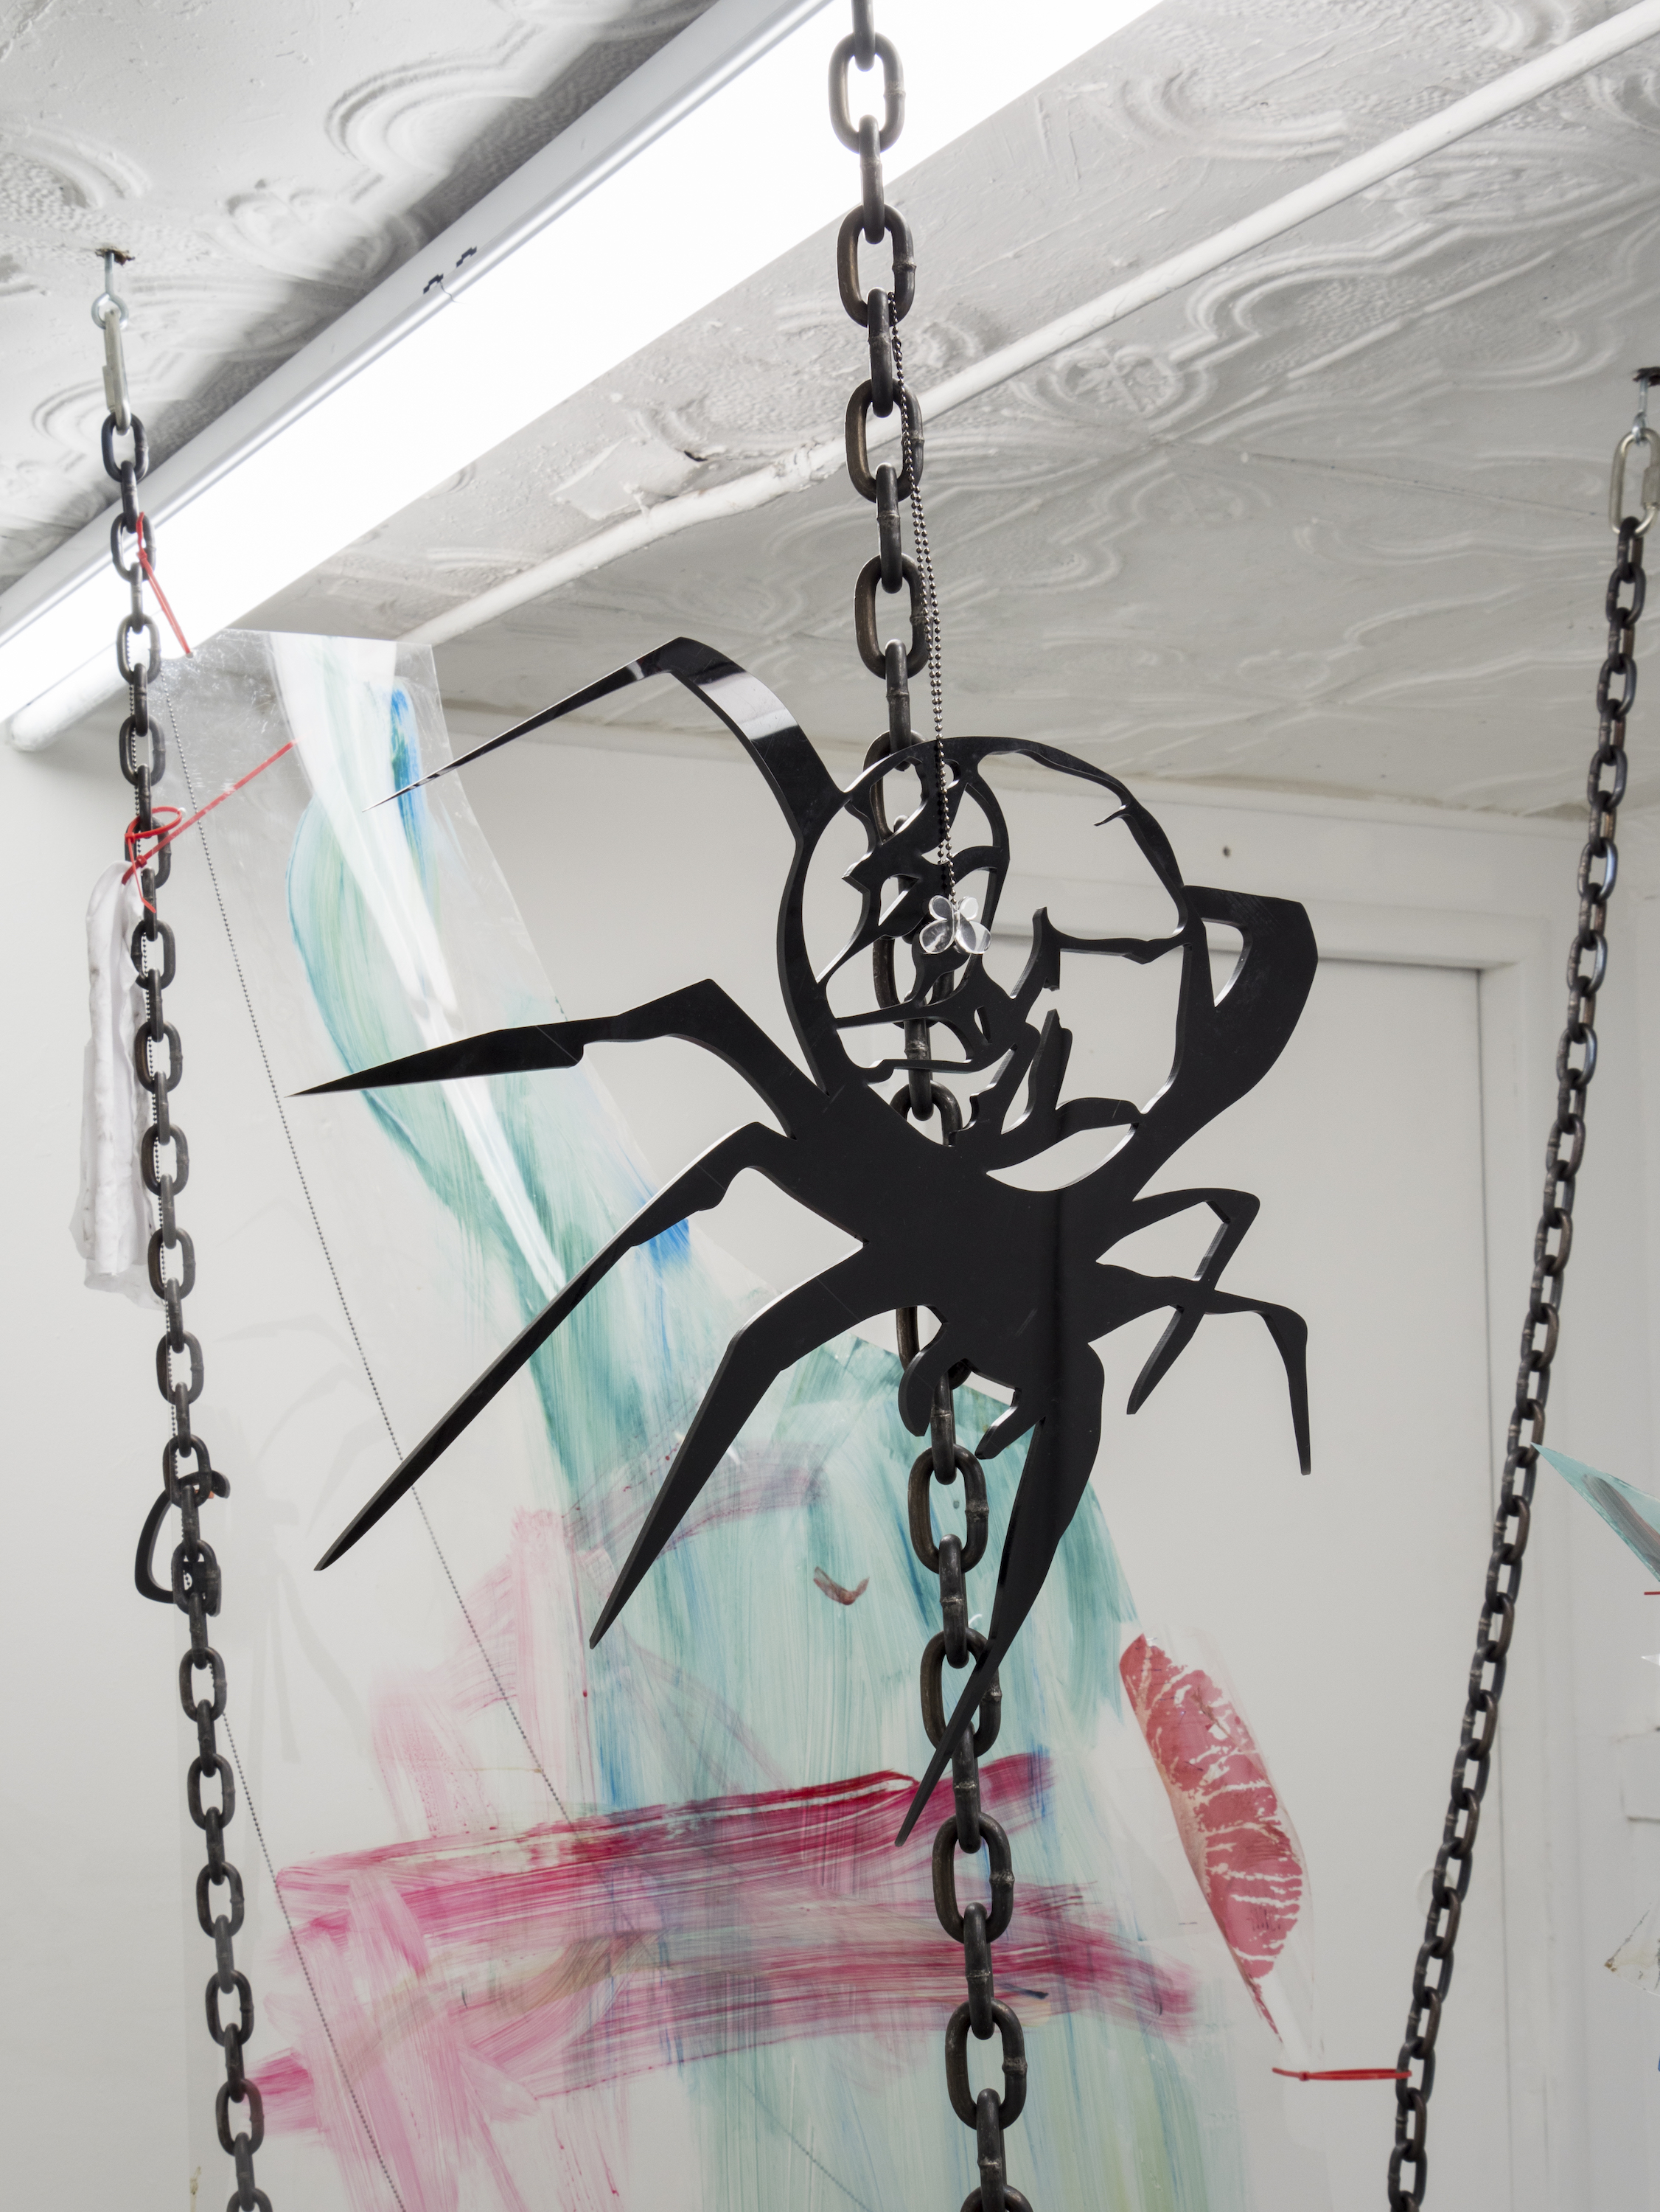 Raque Ford,  Horny Spider Butterfly (detail),  2017, acrylic paint on polypropelene, steel chain, ball chain, butterfly bead, zip ties and acrylic, 85 x 31 in